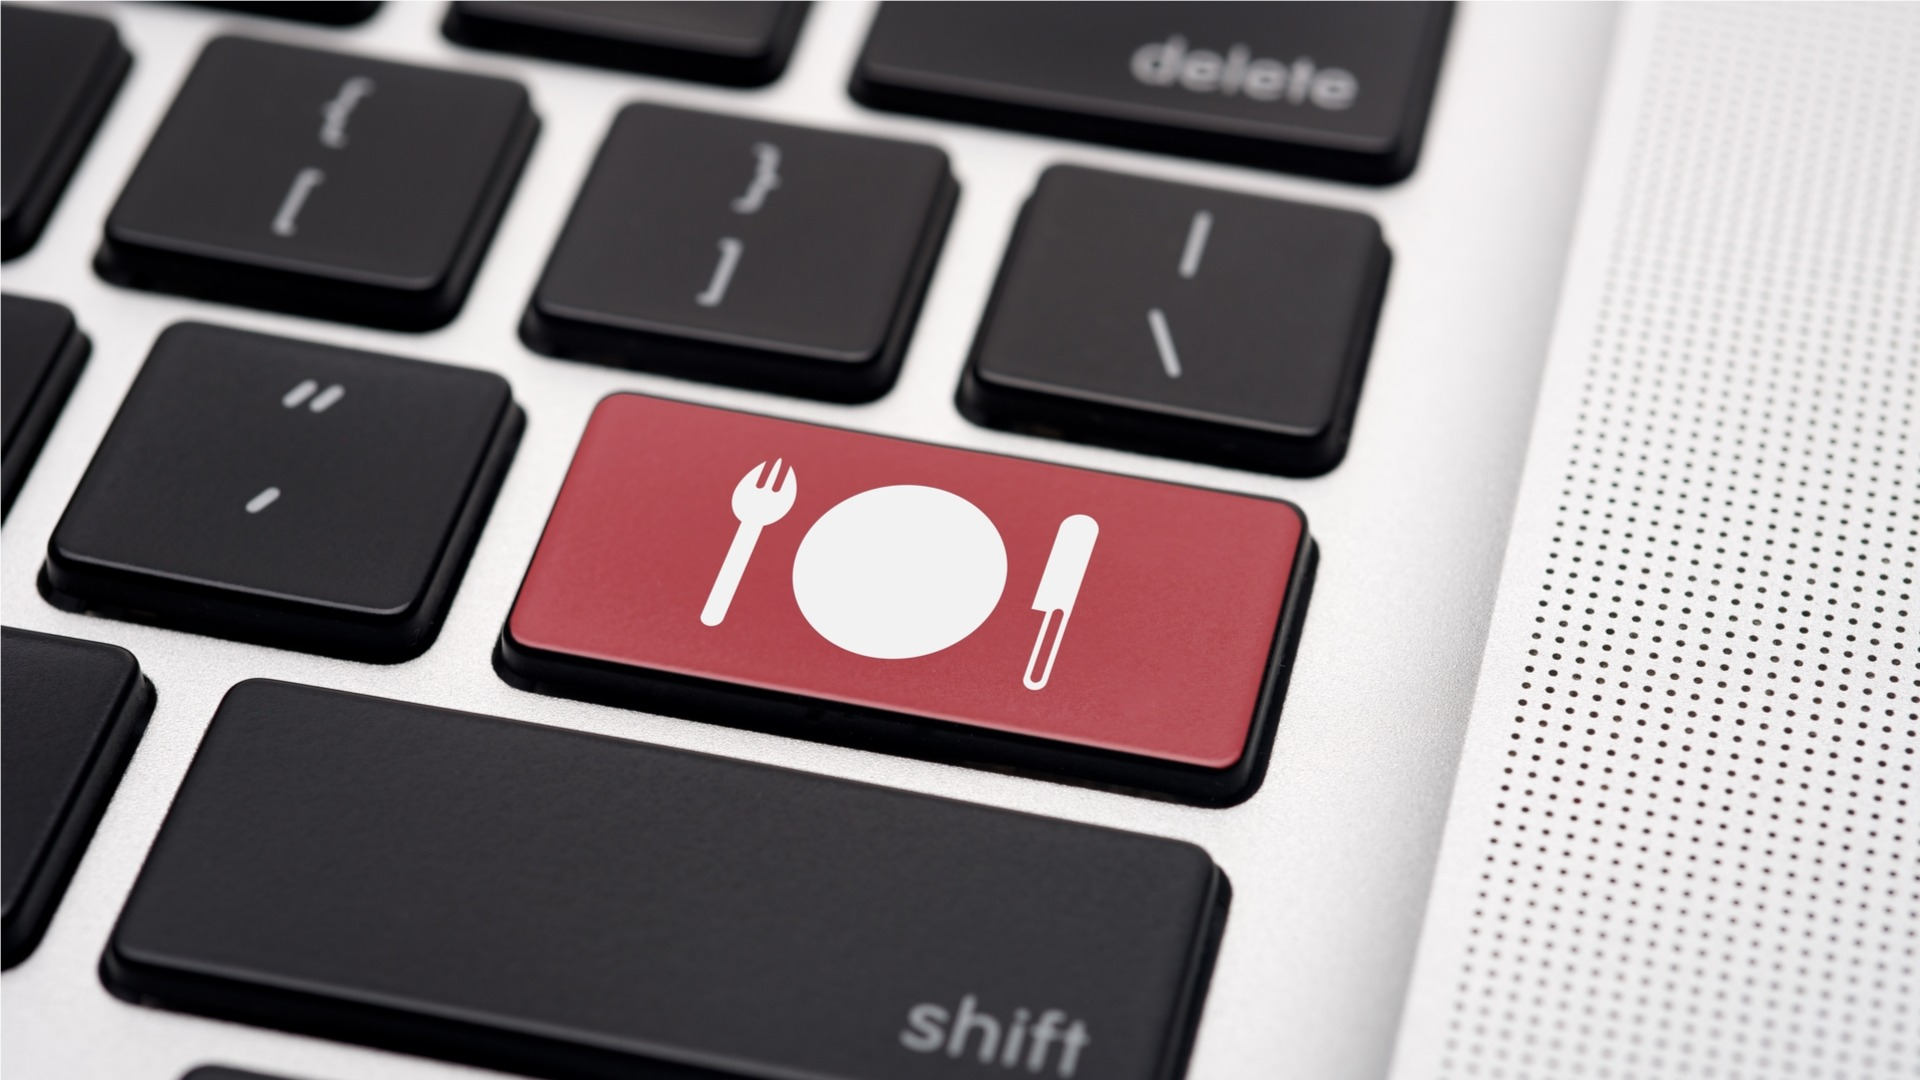 Food Keyboard Key